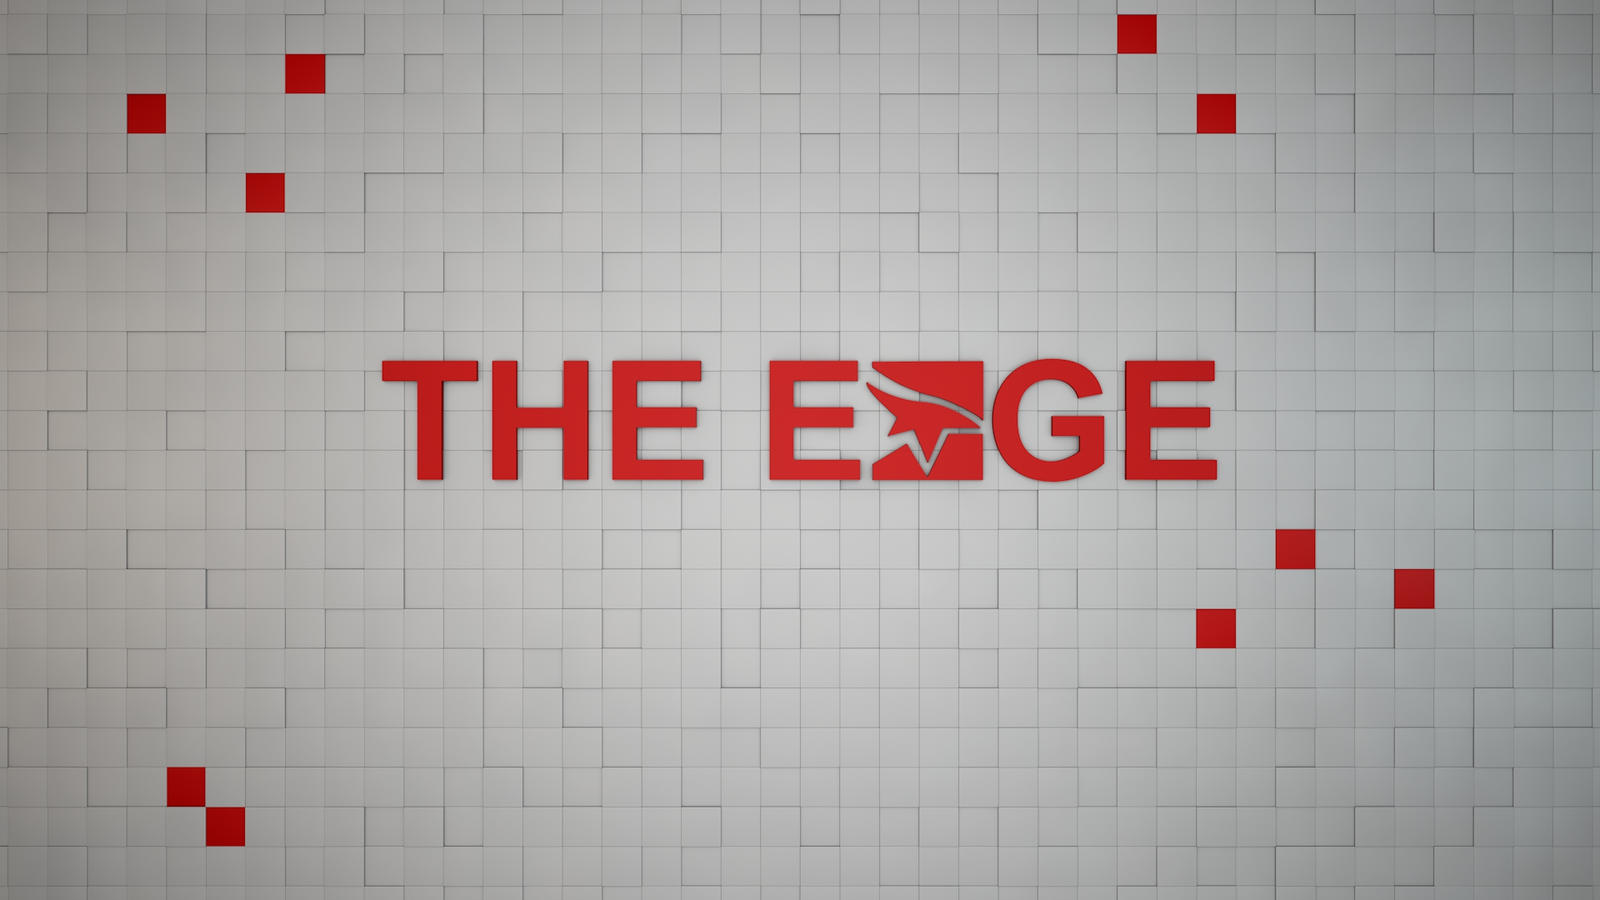 how to change the internal resolution of mirrors edge